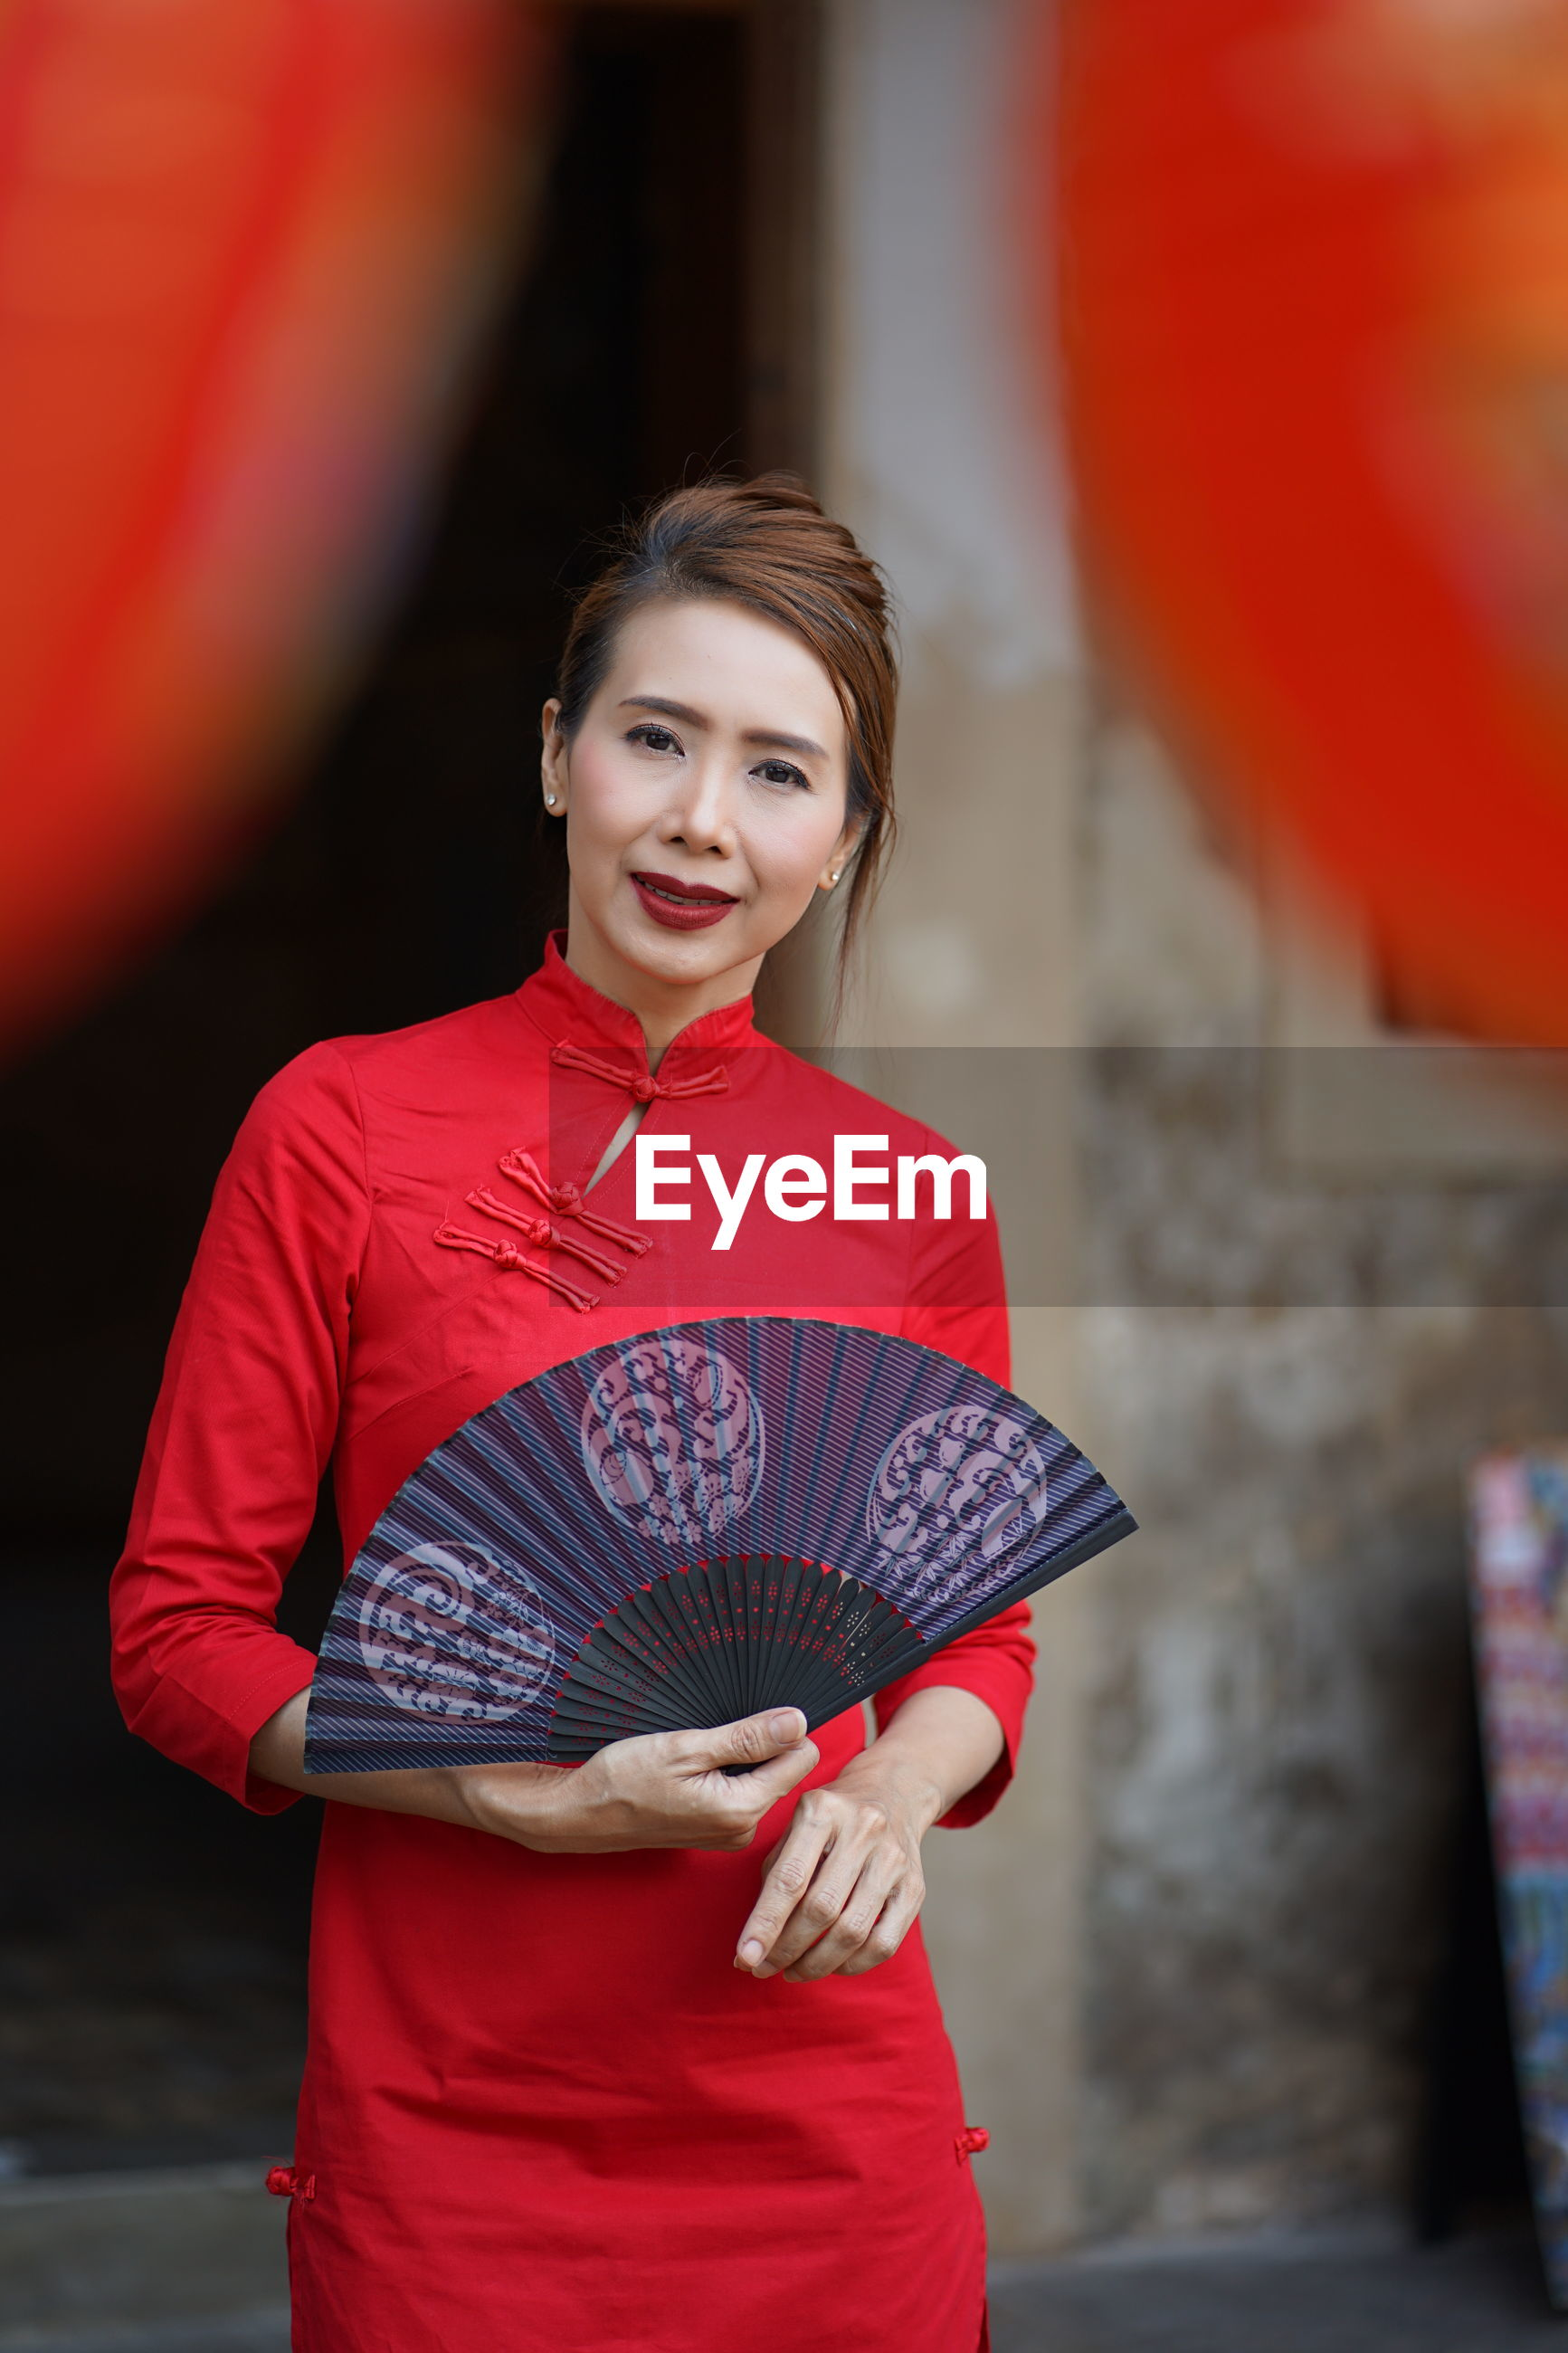 Portrait of smiling woman holding hand fan